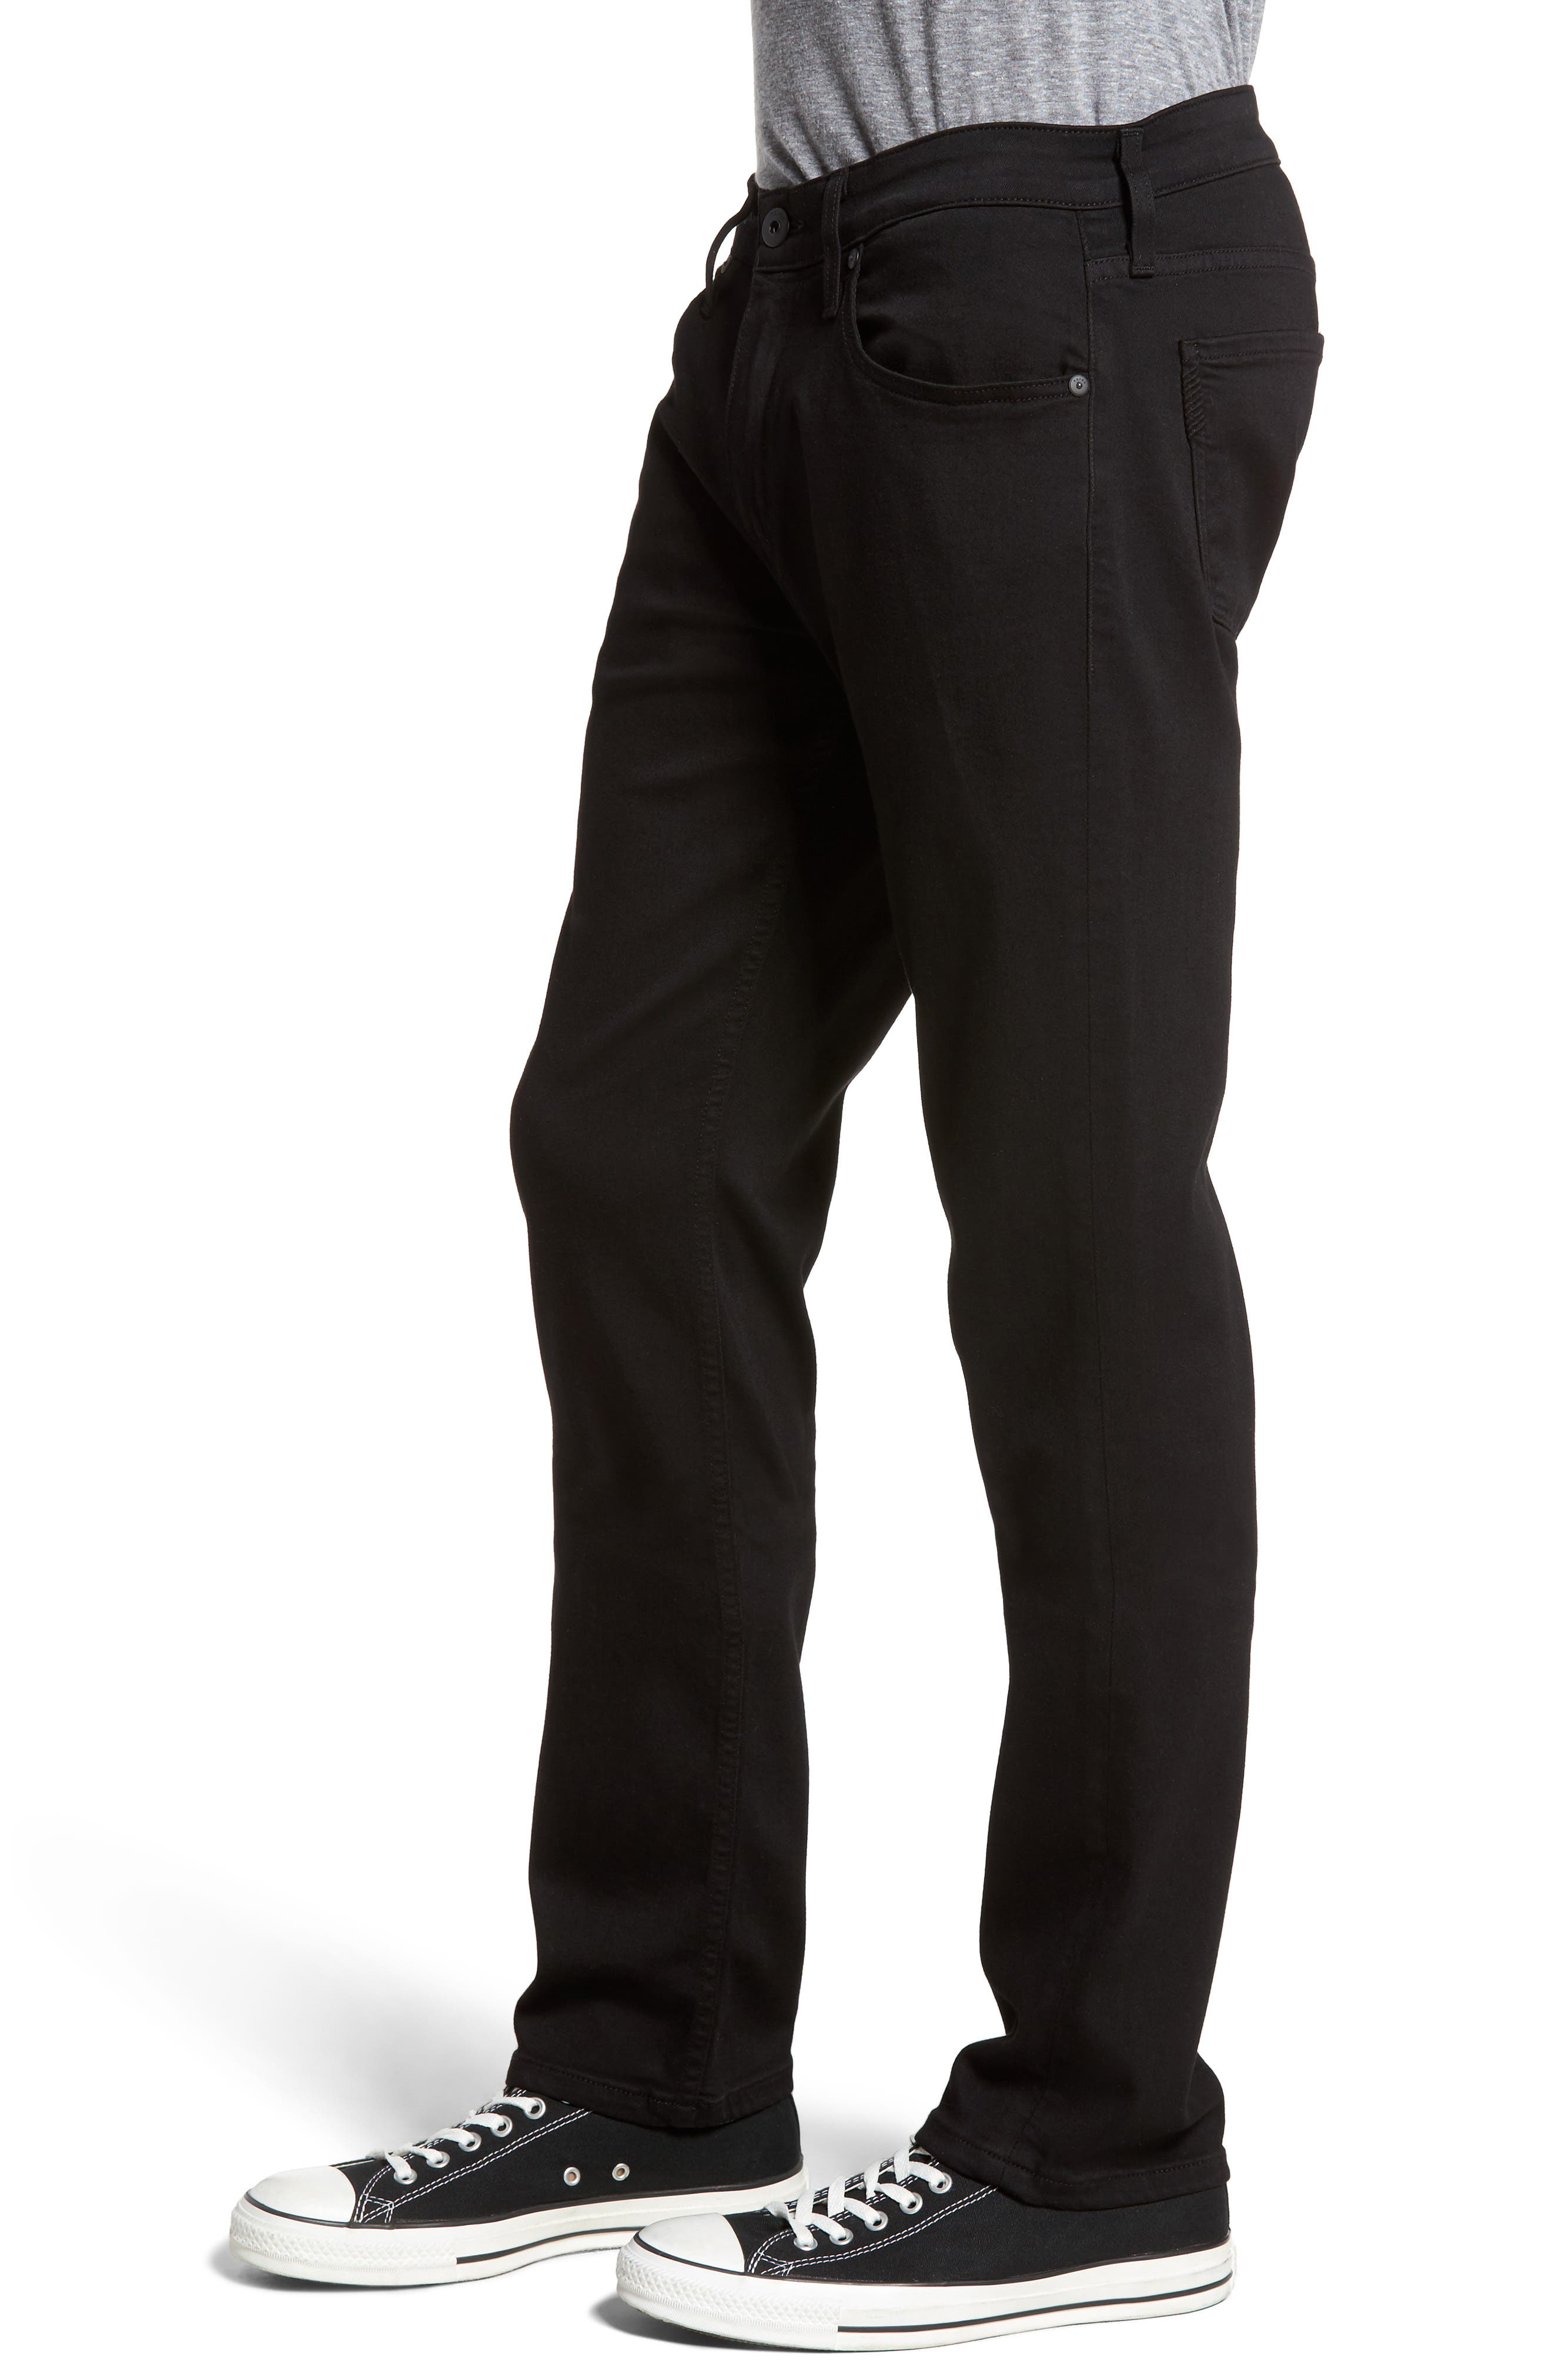 Federal Slim Straight Leg Jeans,                             Alternate thumbnail 3, color,                             BLACK SHADOW